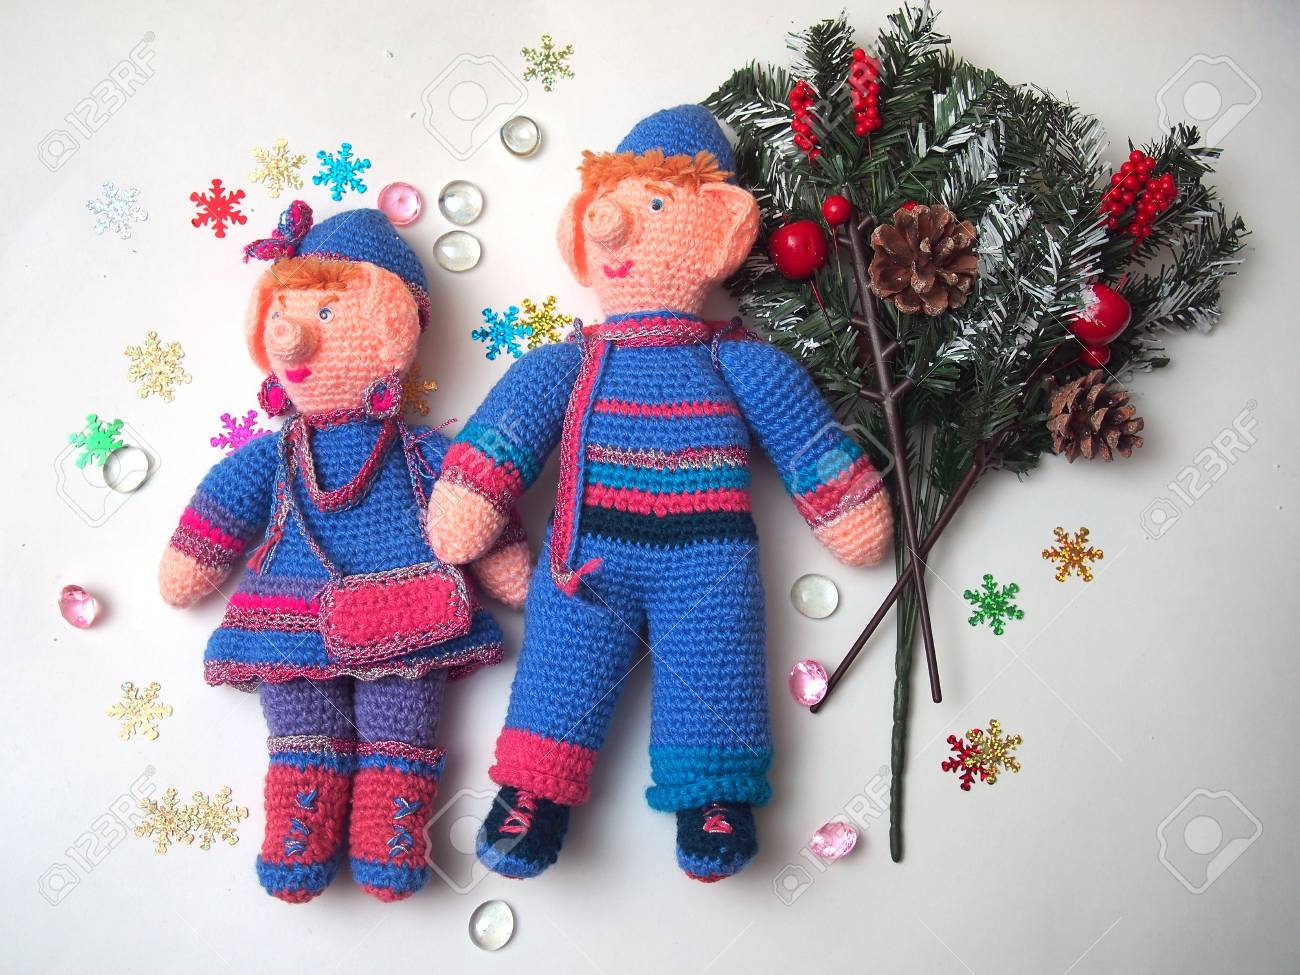 Two Handmade Dolls With Christmas Decorations Knitted Dolls Stock Photo Picture And Royalty Free Image Image 114072657